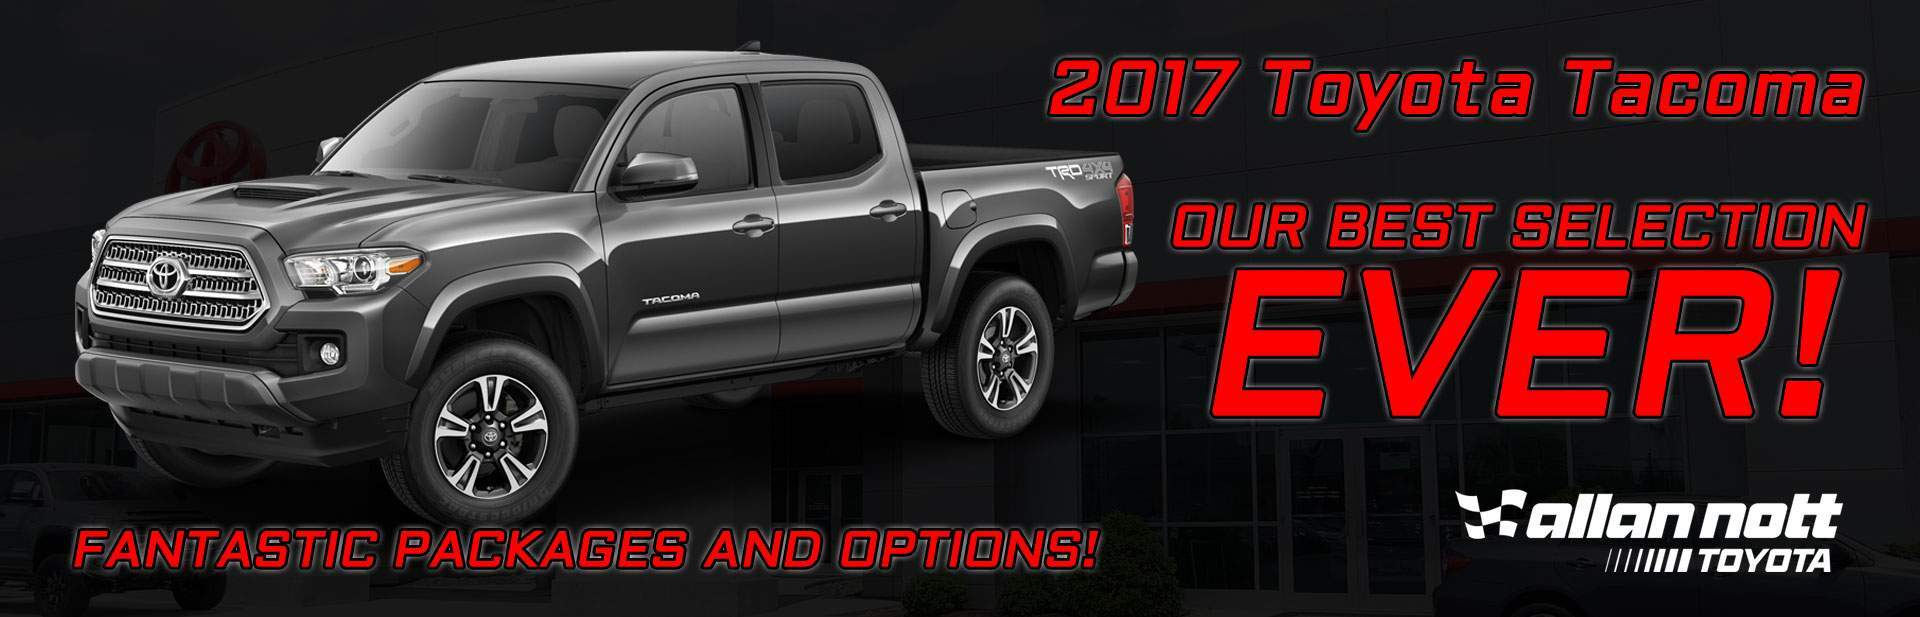 Our best selection of Toyota Tacomas ever! Drive one home today!